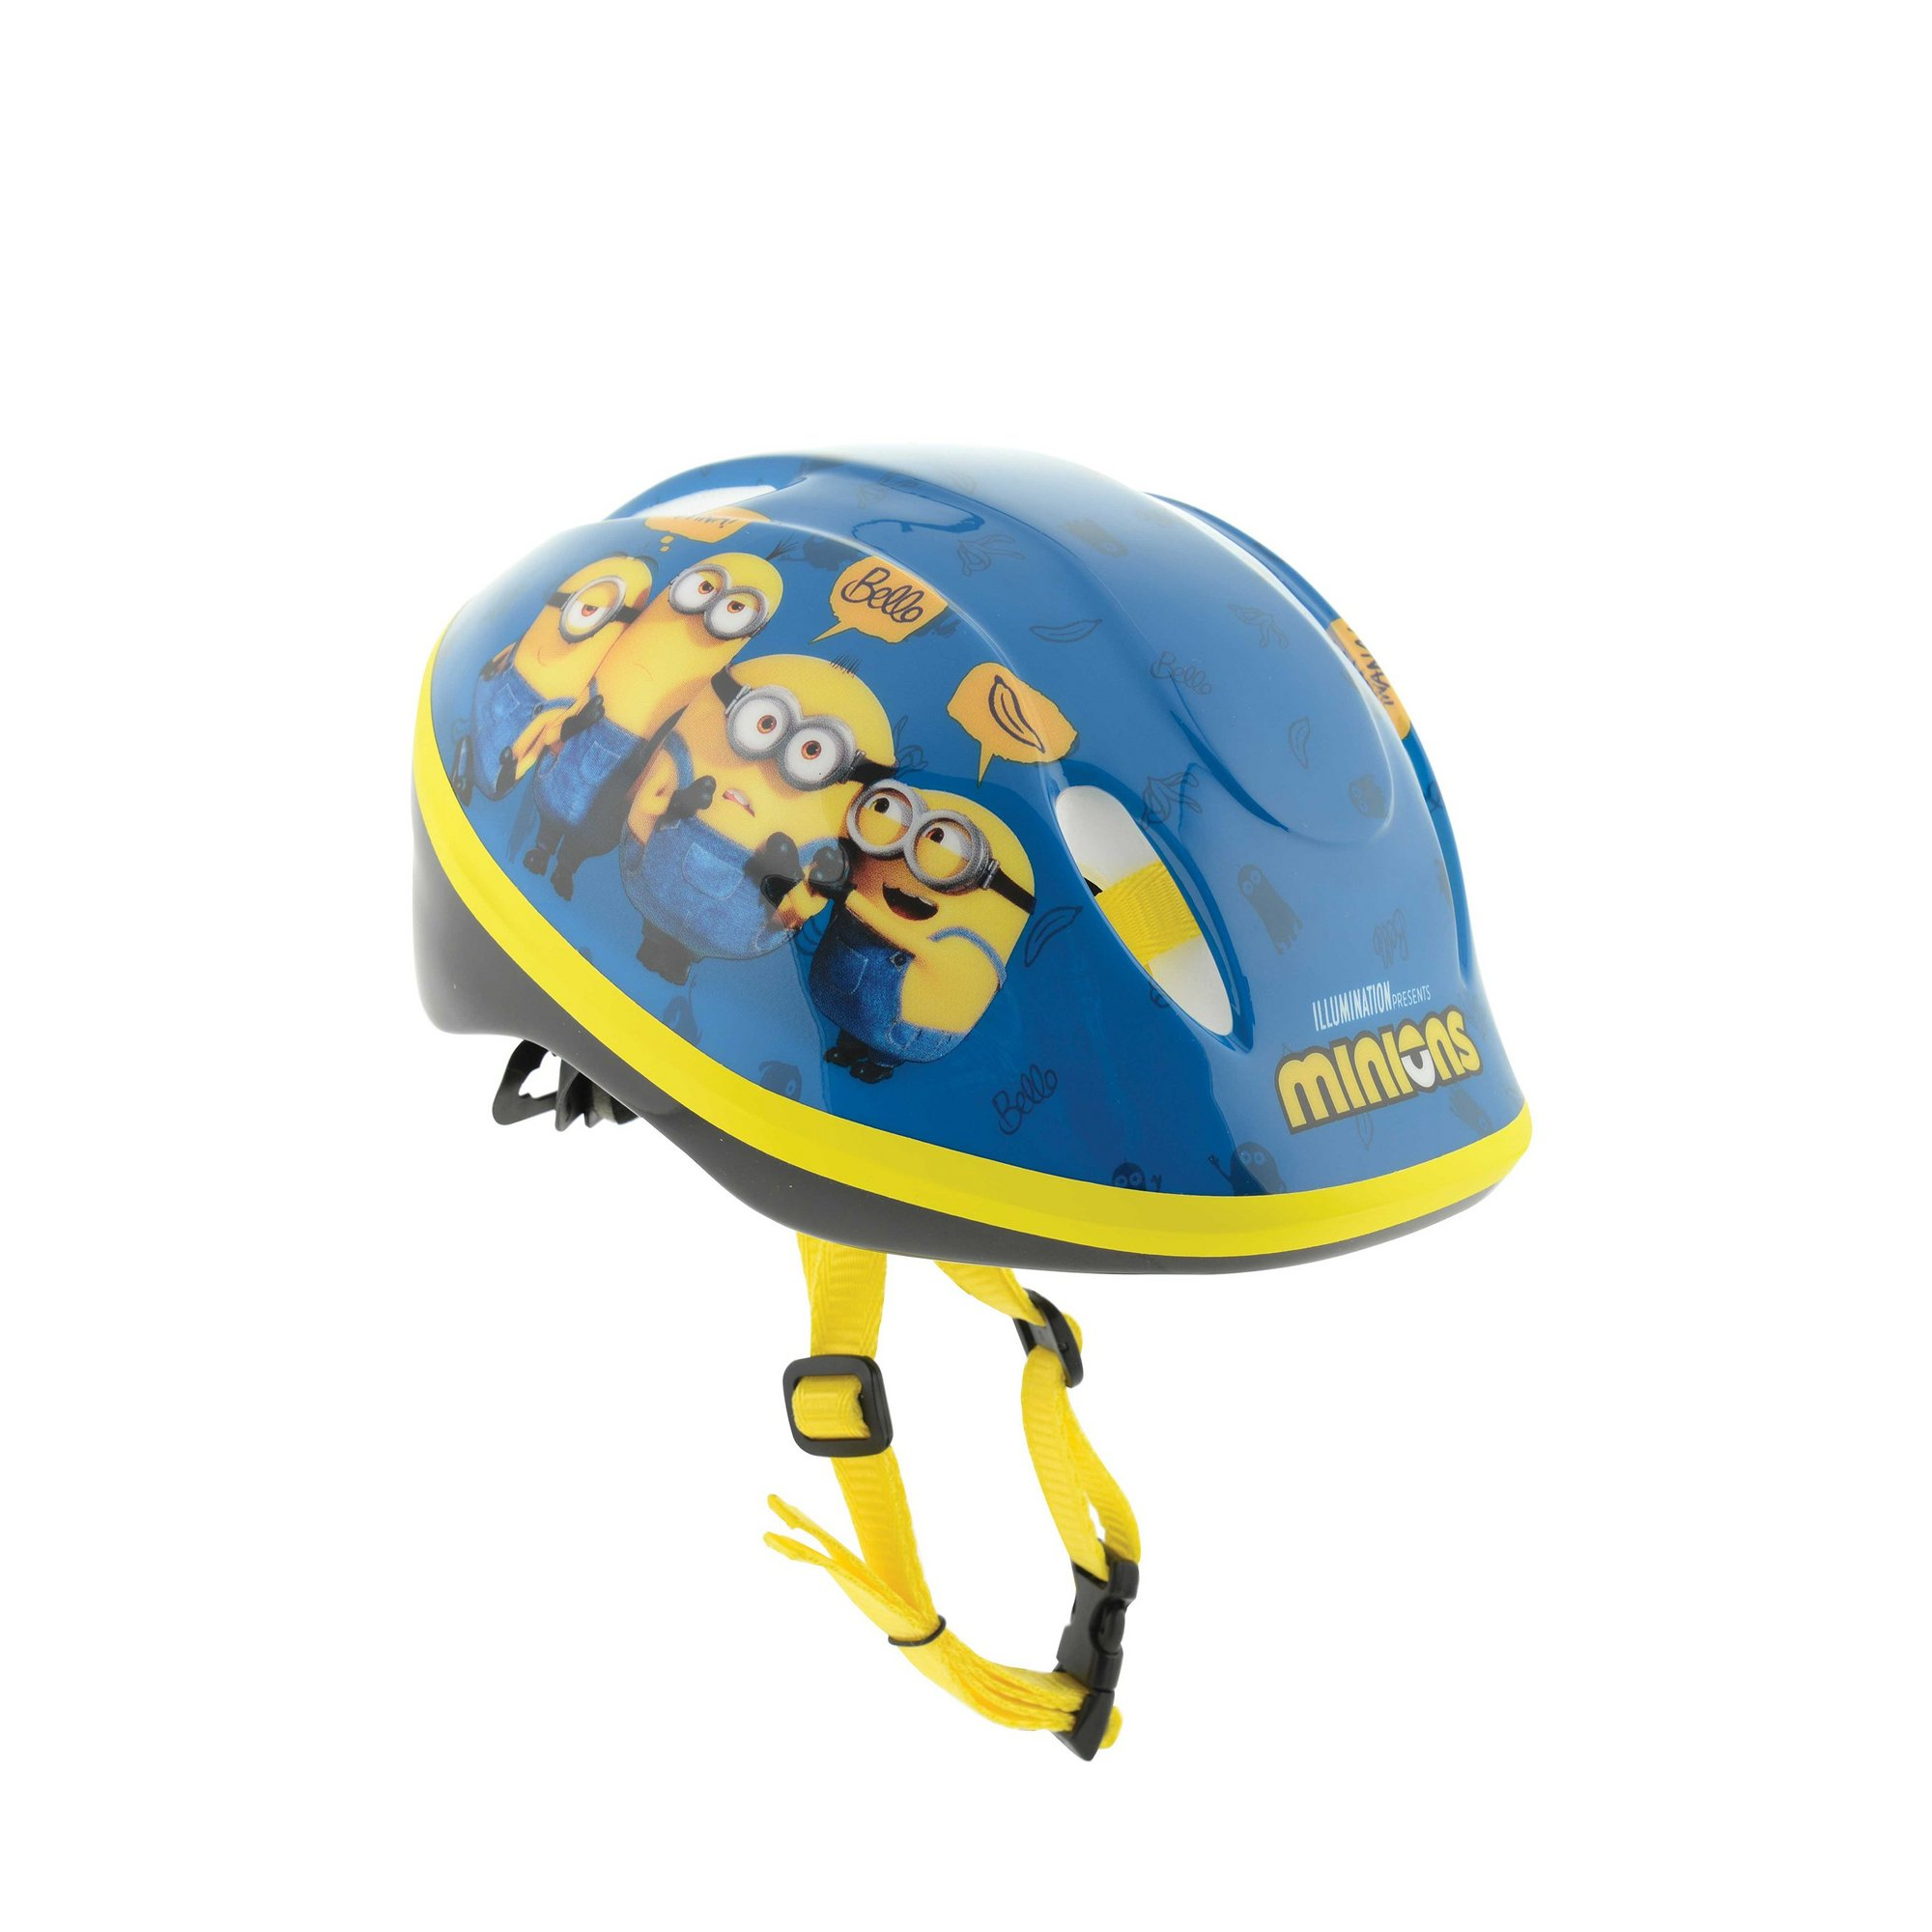 Image of Minions 2 Safety Helmet